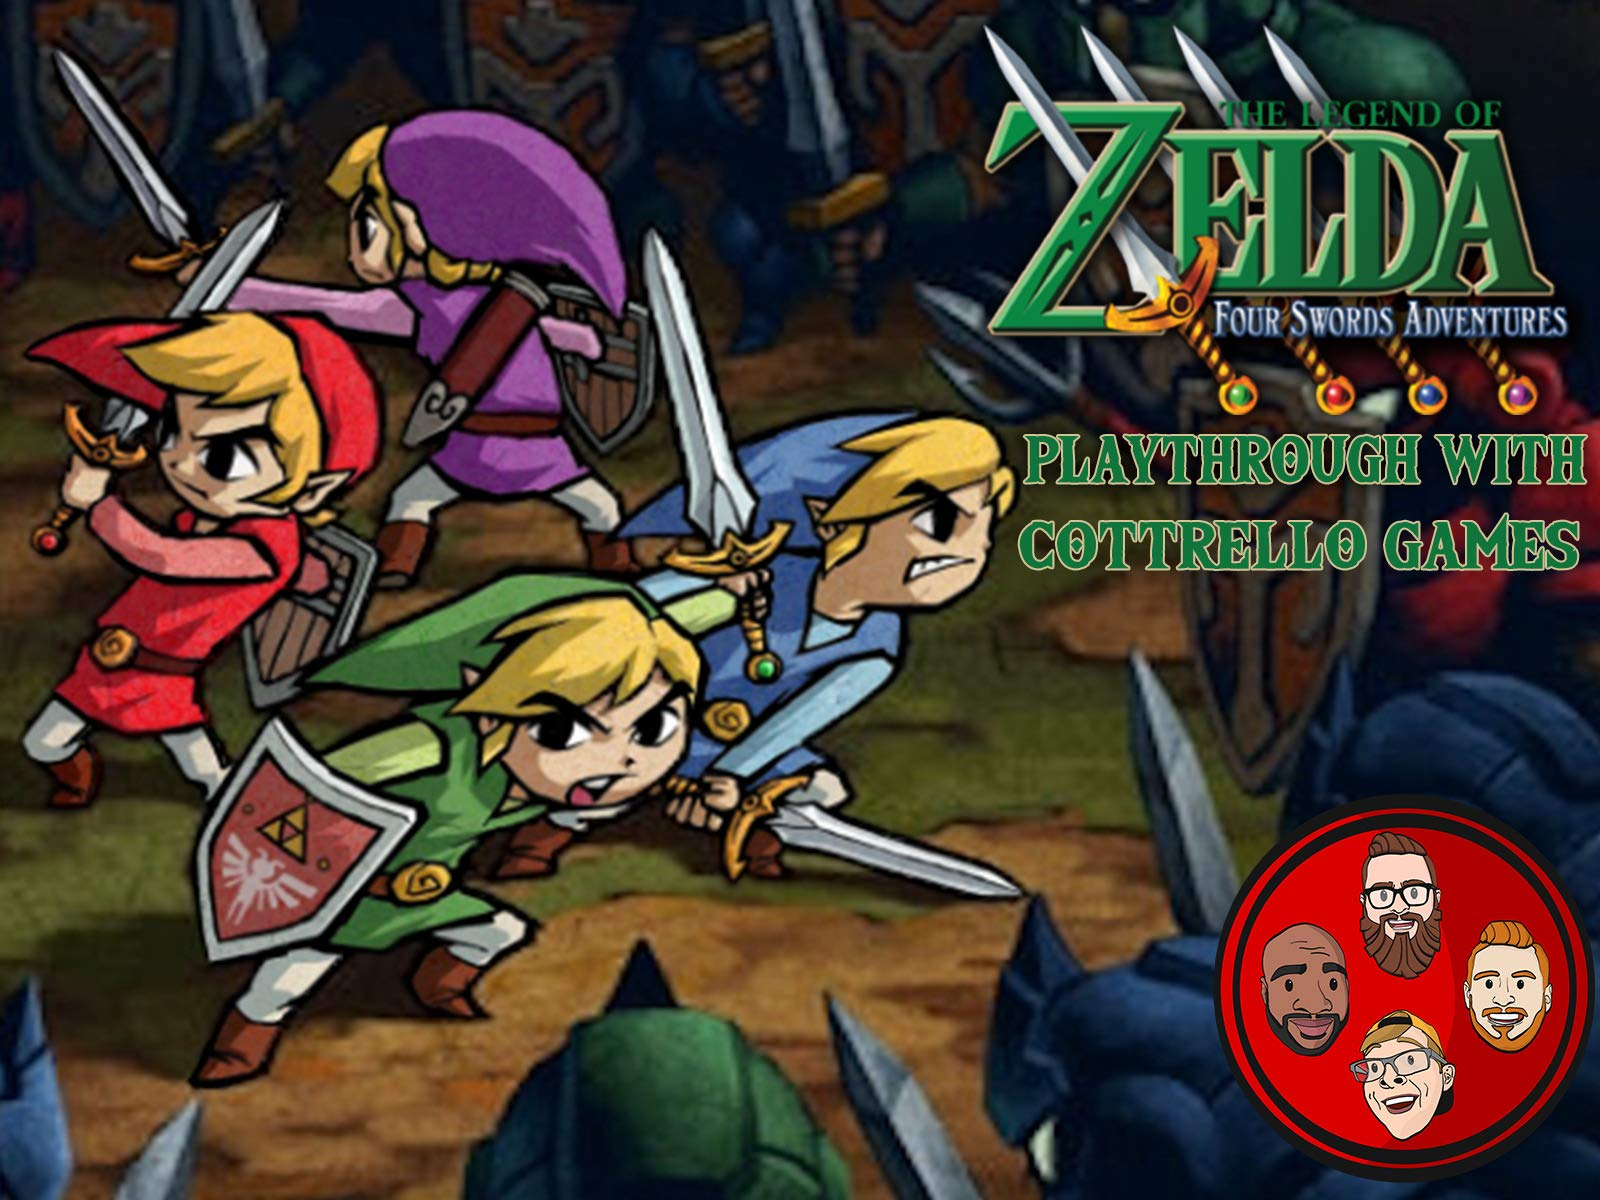 Clip: The Legend of Zelda: Four Swords Adventures Playthrough with Cottrello Games - Season 1